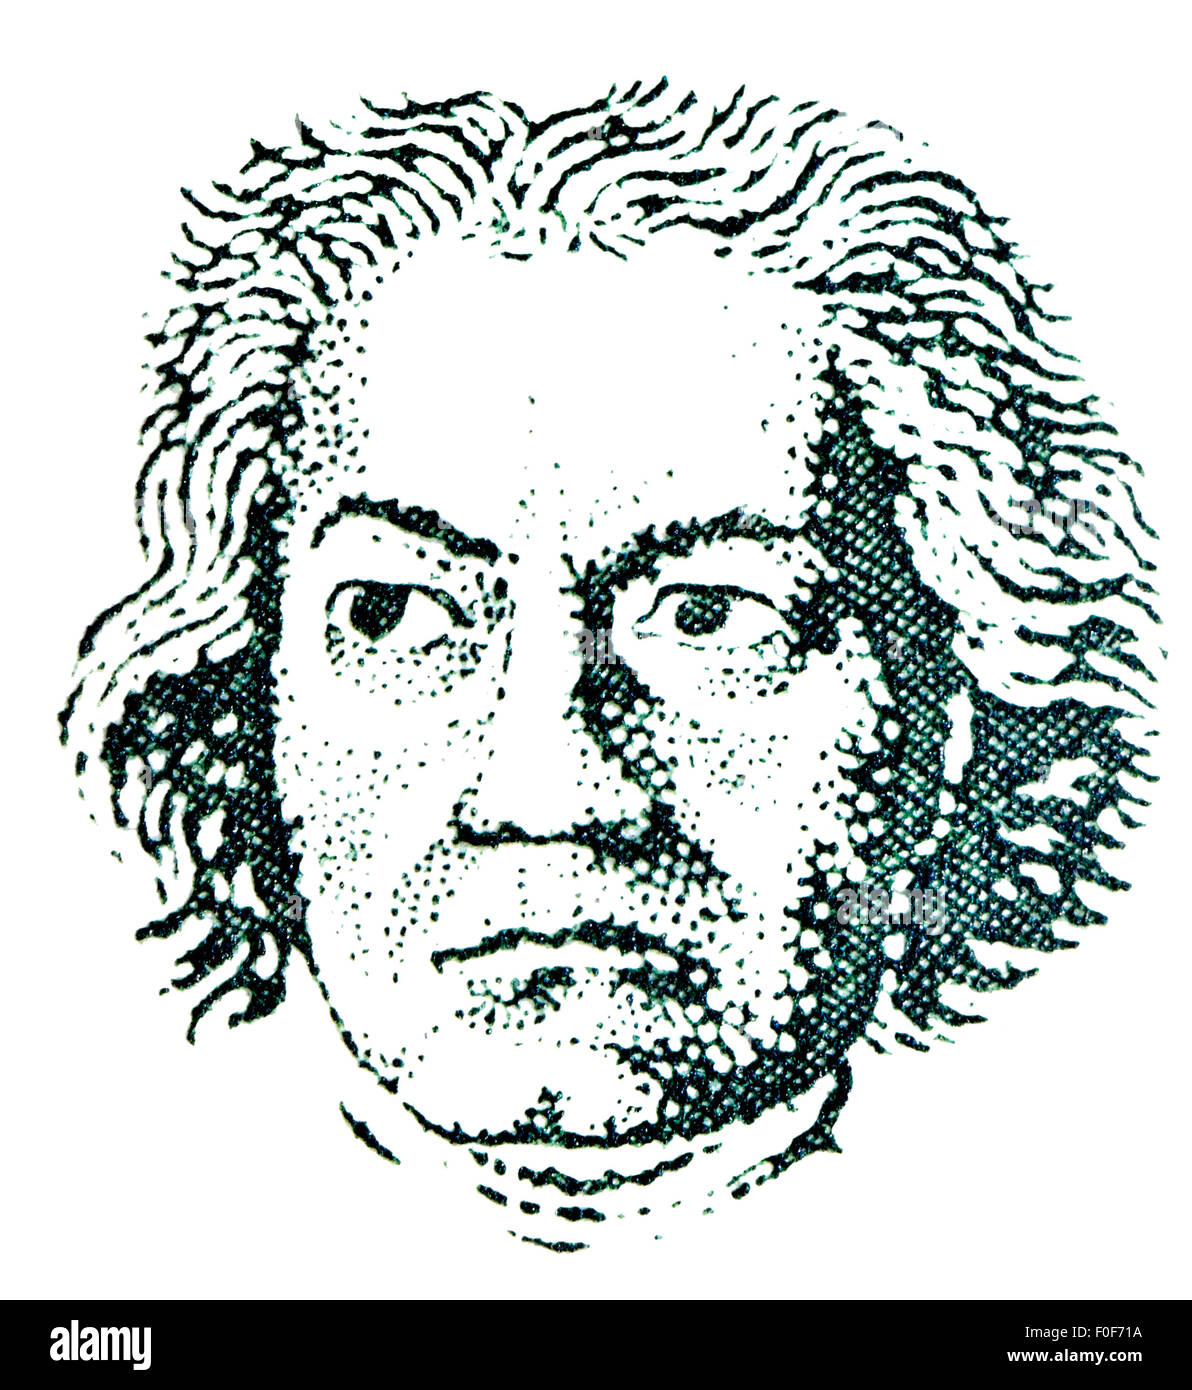 Portrait of Ludwig van Beethoven (1770-1827: German composer) from 1961 German postage stamp - Stock Image